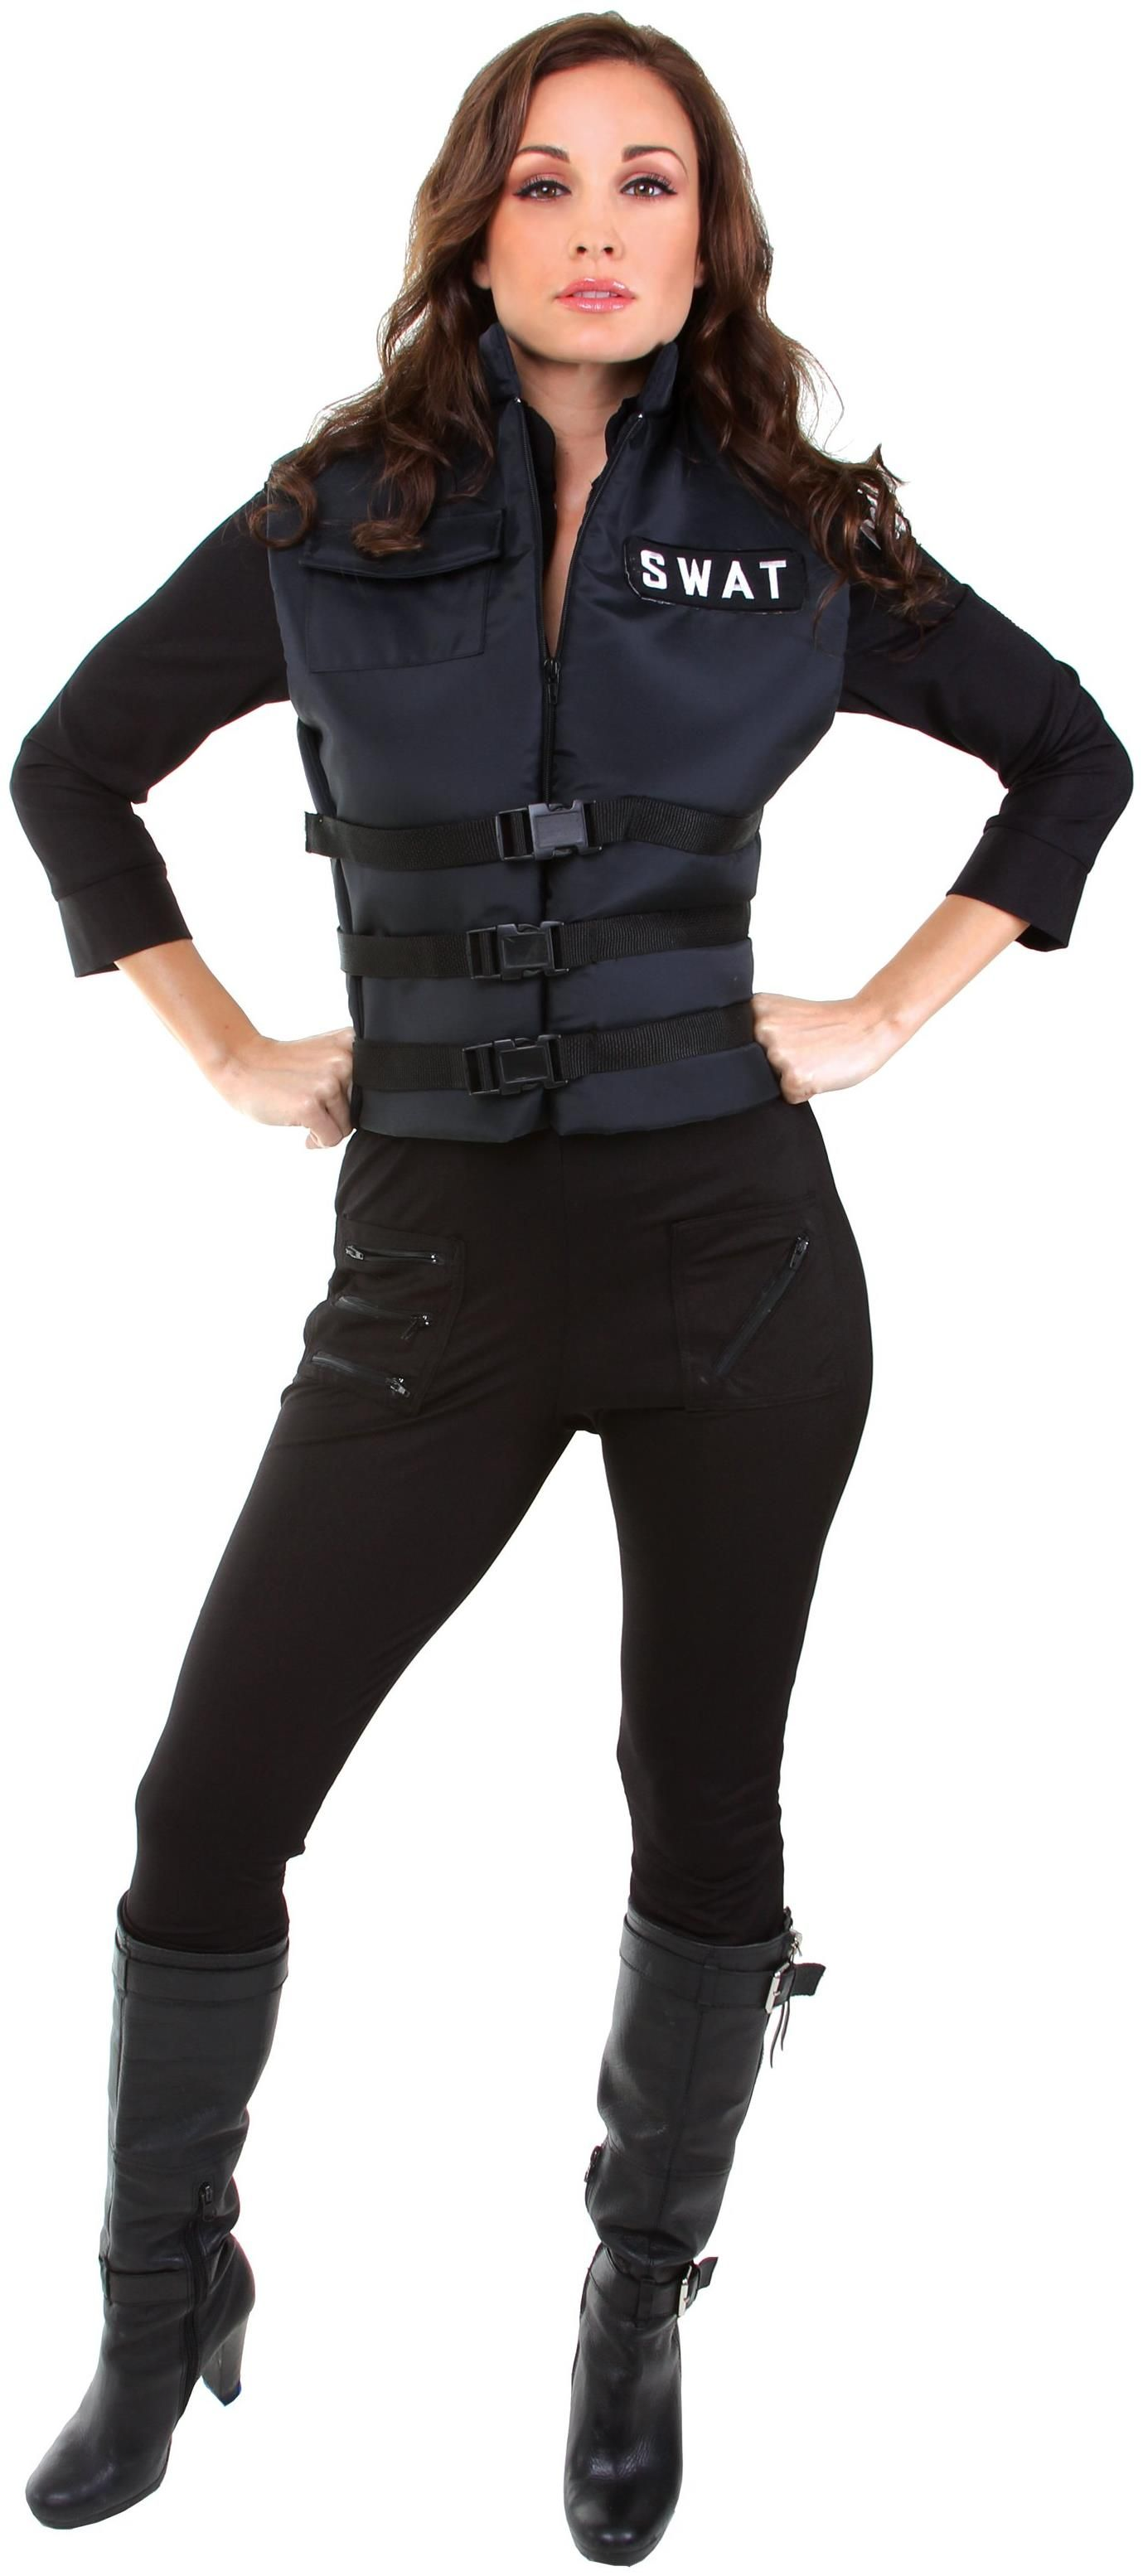 womens lady swat adult costume for halloween - Swat Costumes For Halloween